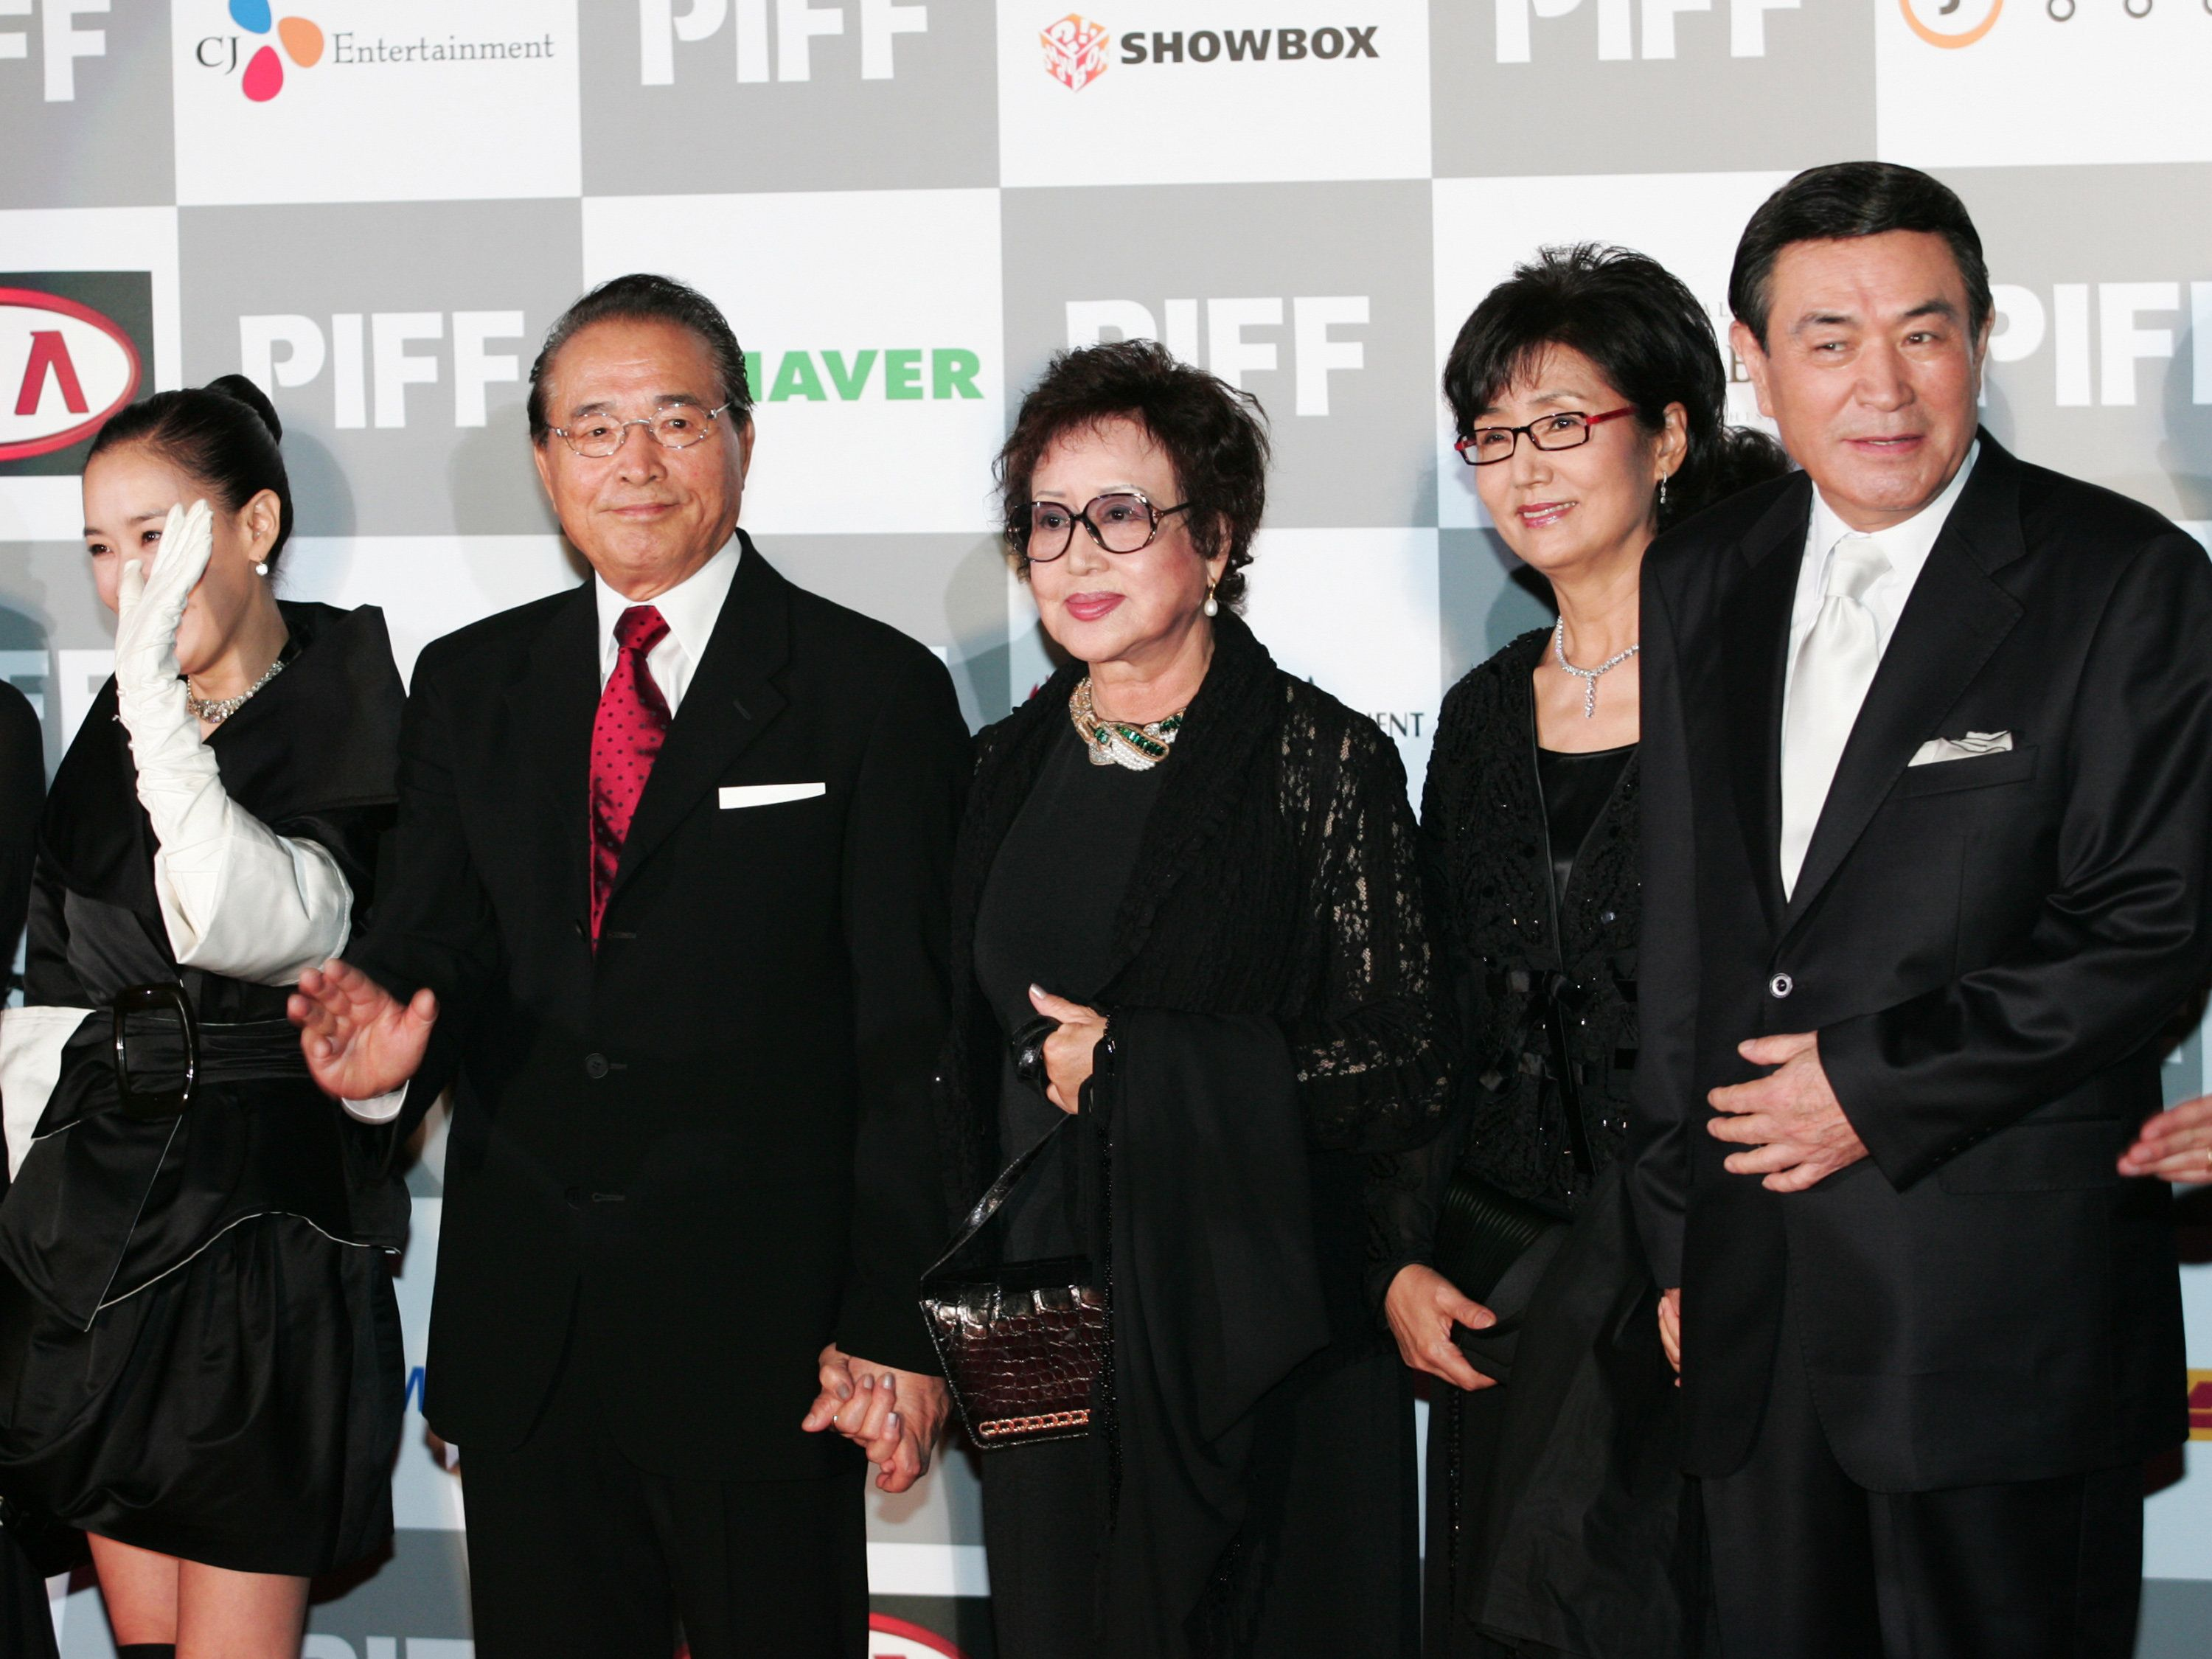 Shin Hyung-Kun and Choi Eun-Hee and Namgung Won during The 11th Pusan International Film Festival Opening Ceremony - Arrivals at Suyoungman Yacht Stadium in Pusan, Pusan, South Korea. (Photo by Han Myung-Gu/WireImage)